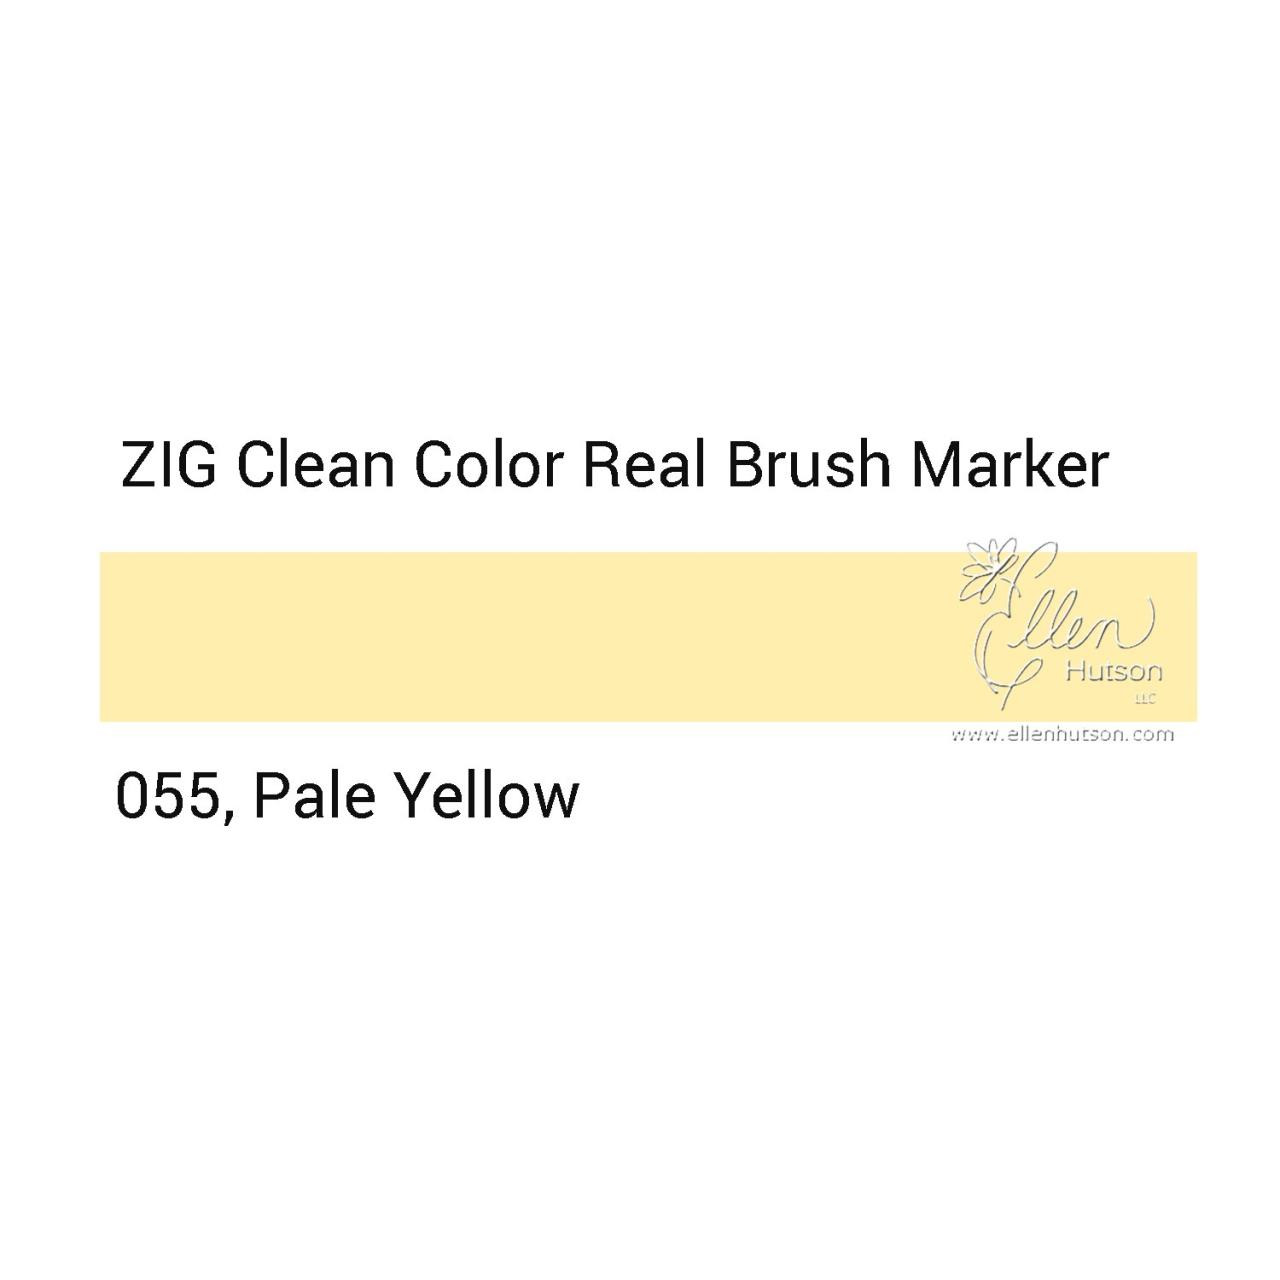 055 - Pale Yellow, ZIG Clean Color Real Brush Marker - 847340037071